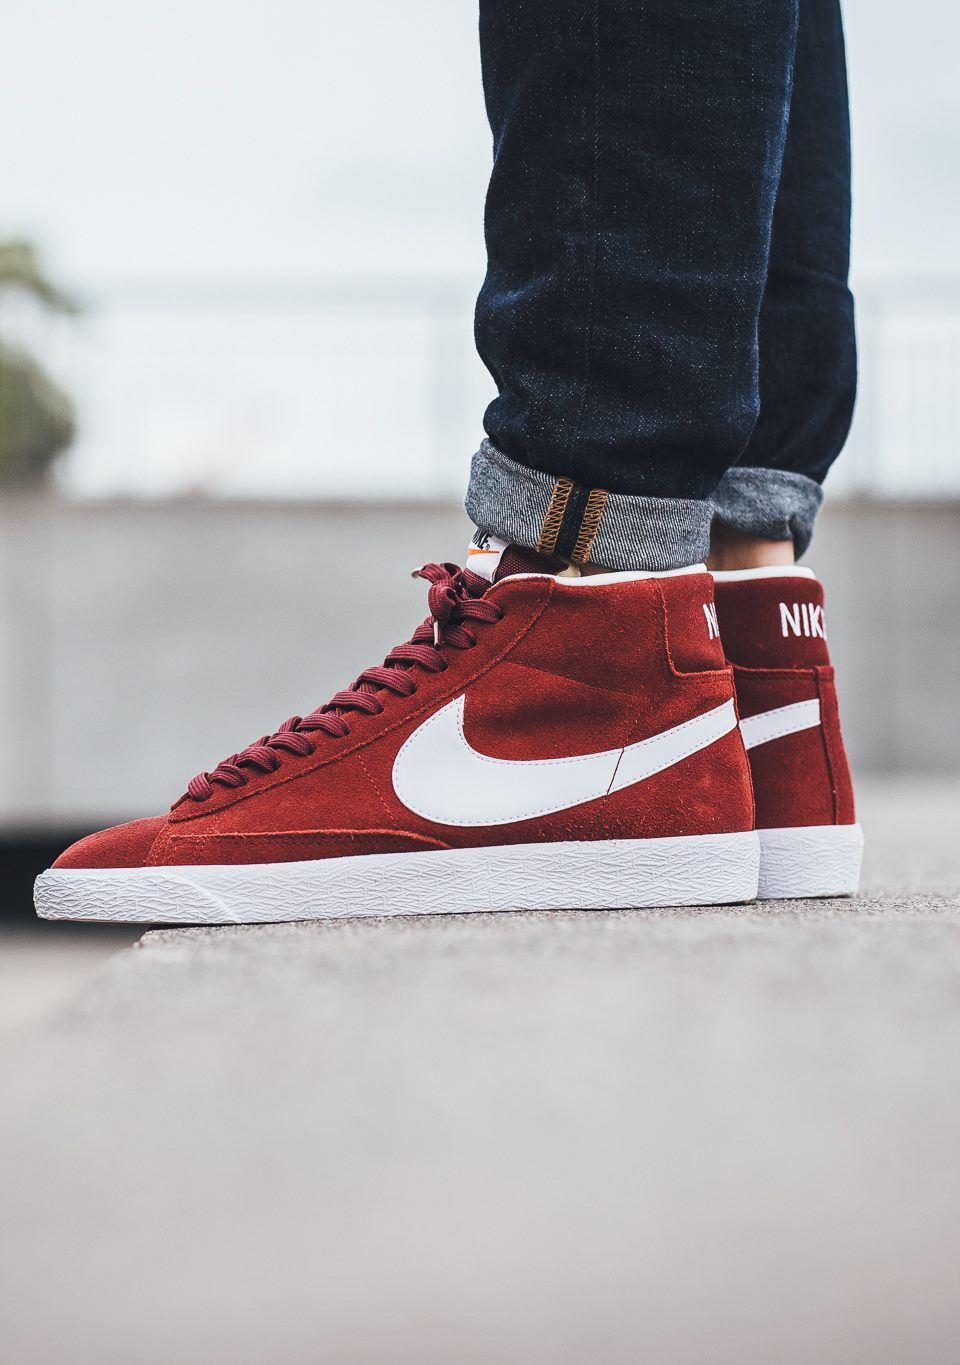 4671acf01f17 Nike Blazer Mid Premium Team Red  sneakernews  Sneakers  StreetStyle  Kicks